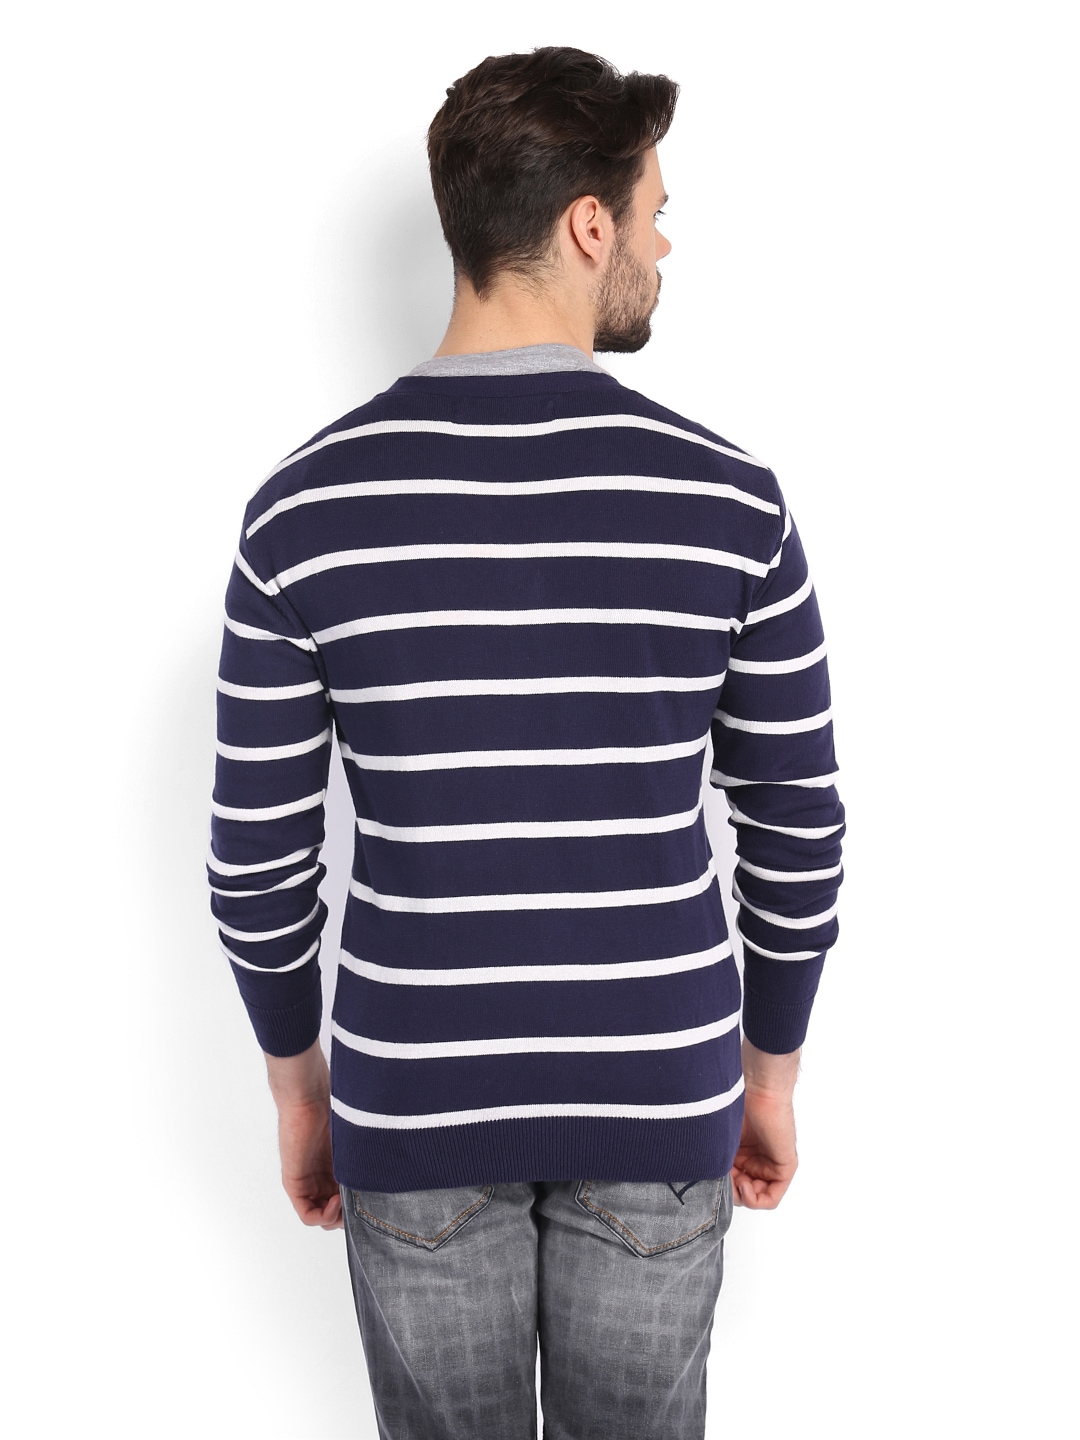 Shop navy cardigan sweater at Neiman Marcus, where you will find free shipping on the latest in fashion from top designers. Available in Navy, Winter White. More Details Neiman Marcus Cashmere Collection Cashmere Intarsia Open-Front Cardigan Details 7GG, 4-ply knit intarsia cardigan.